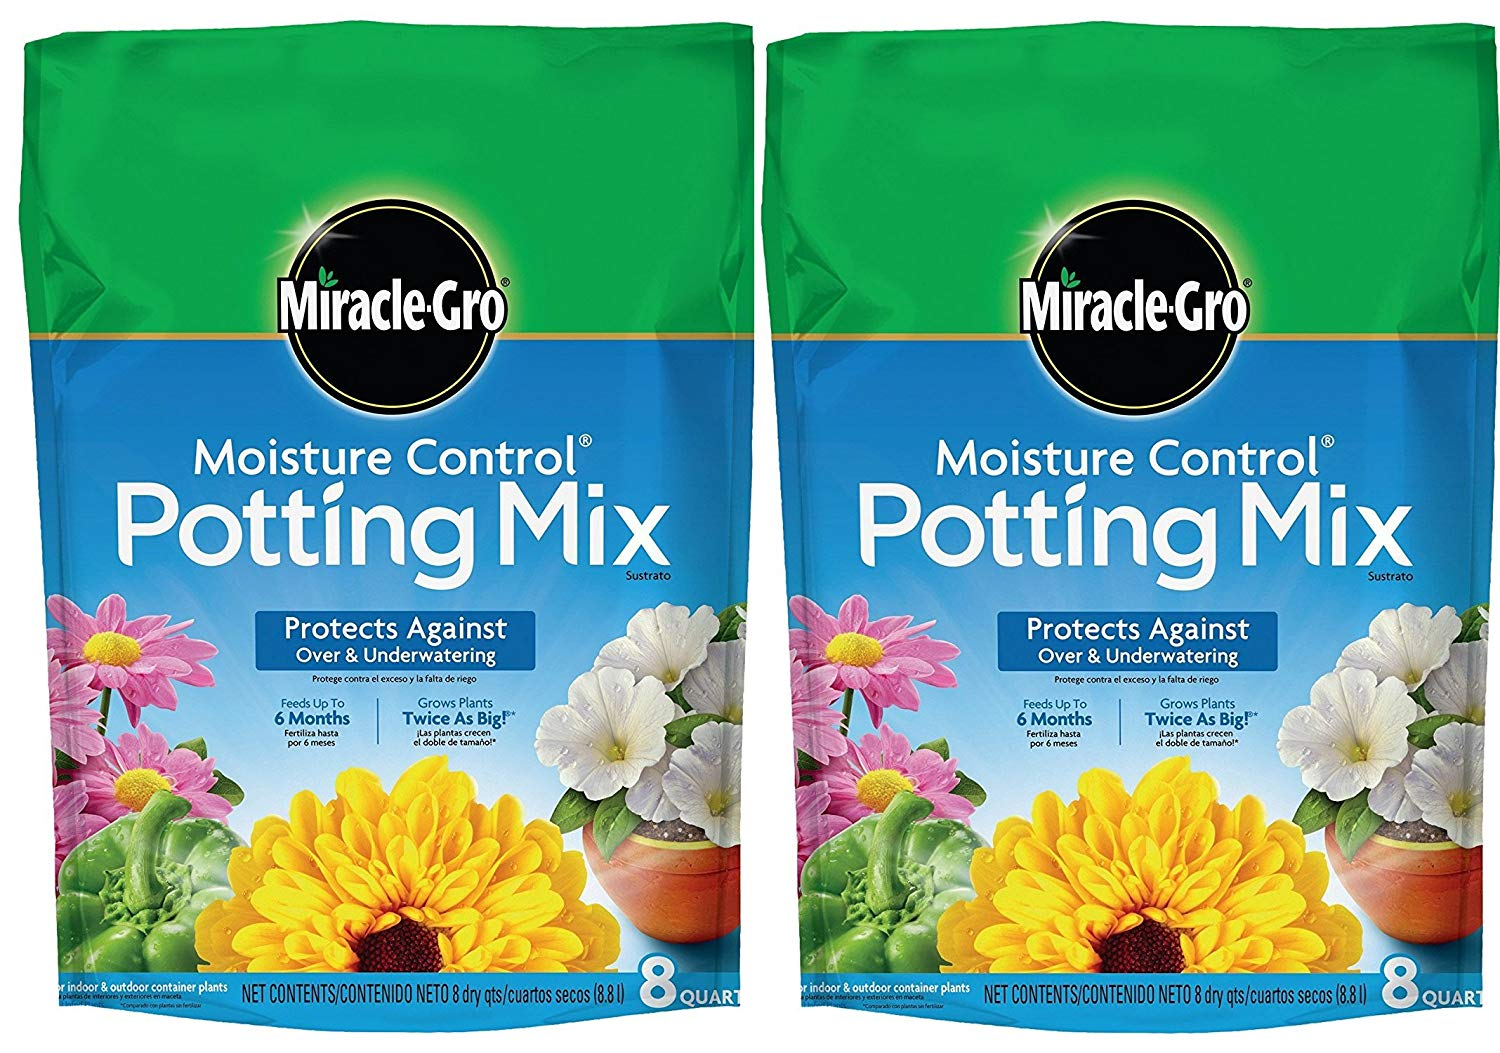 Miracle-Gro Moisture Control Potting Mix, 8-Quart (currently ships to select Northeastern & Midwestern states) (2 Pack (8-qt.))